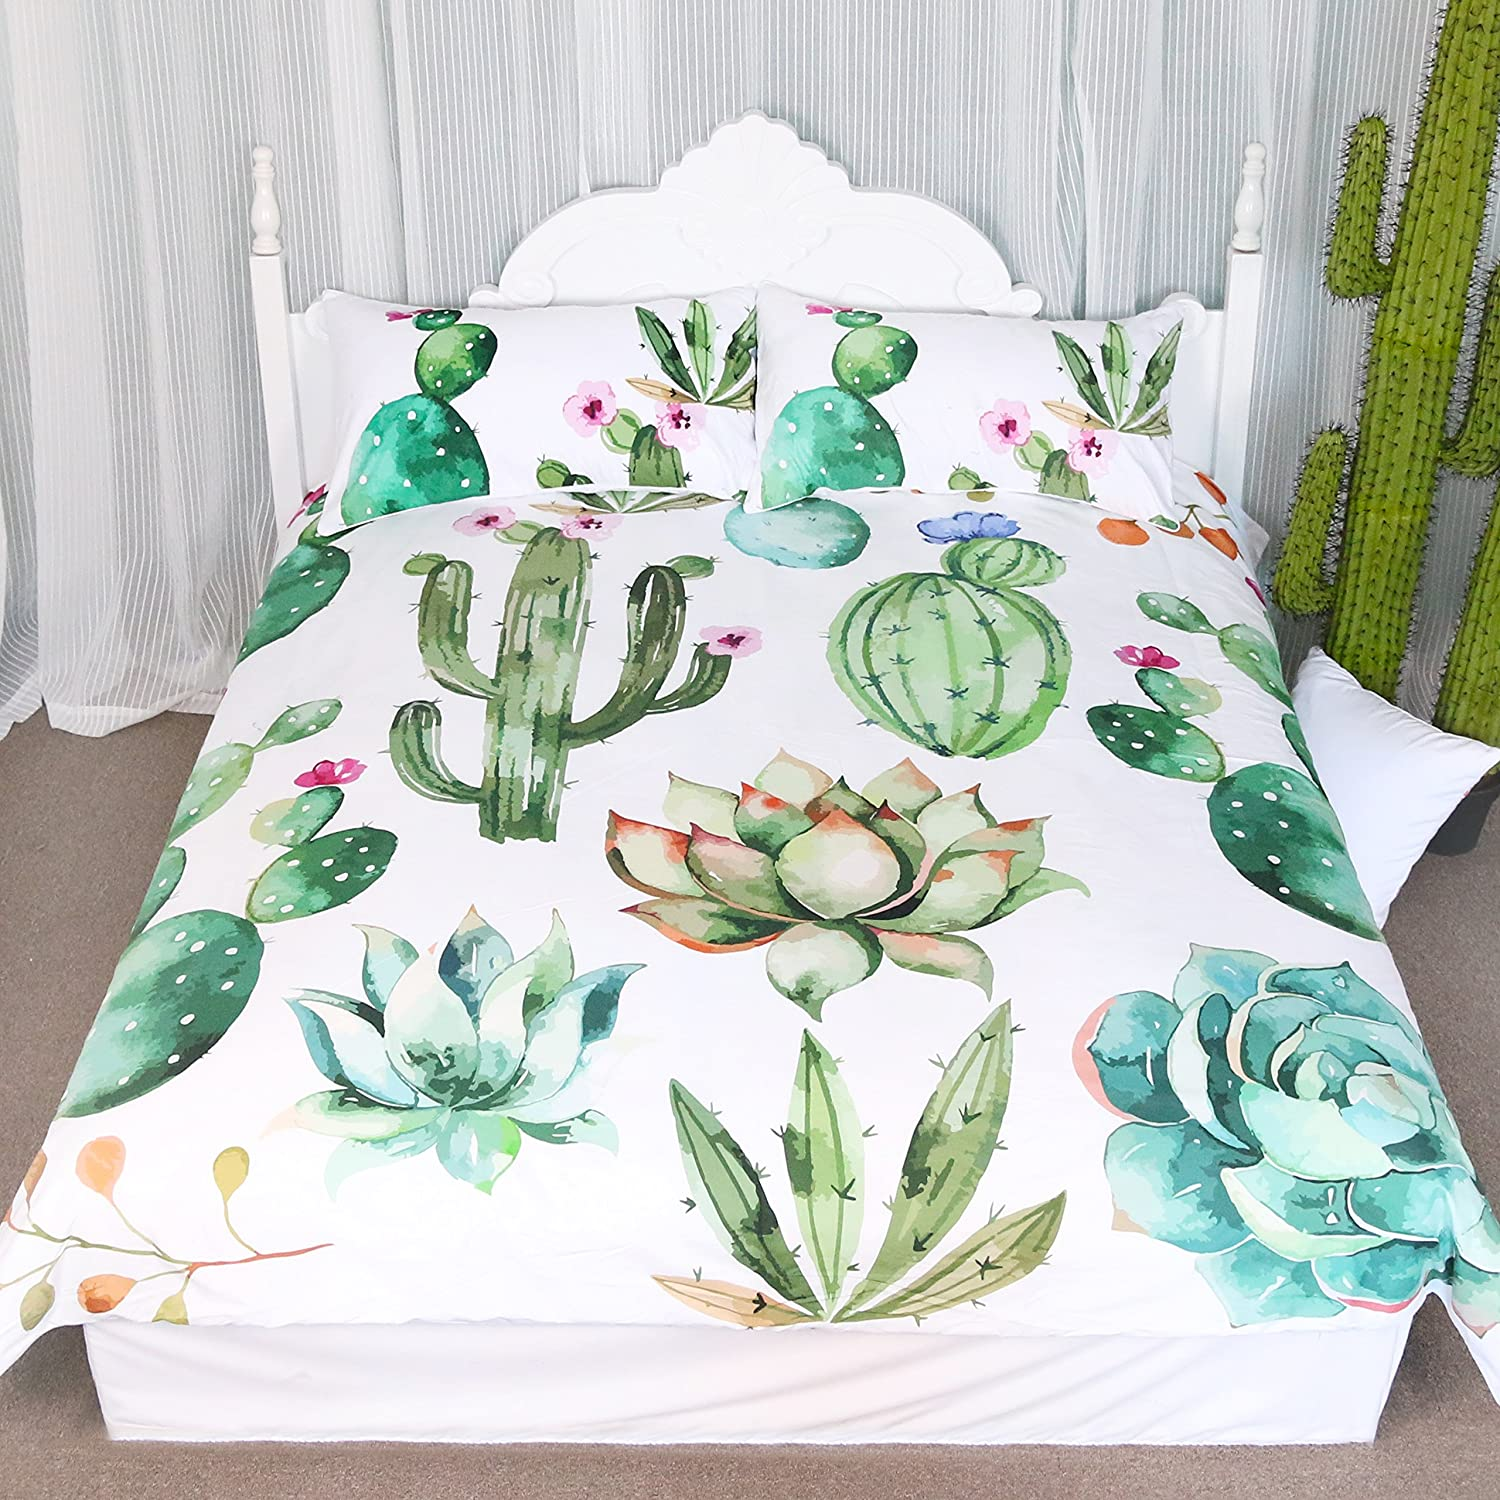 Bright Cactus Pattern Bedding Set Green plants cactus Print 3 Pieces Duvet Cover Set Nature Art Prints Decor Collection (Twin)